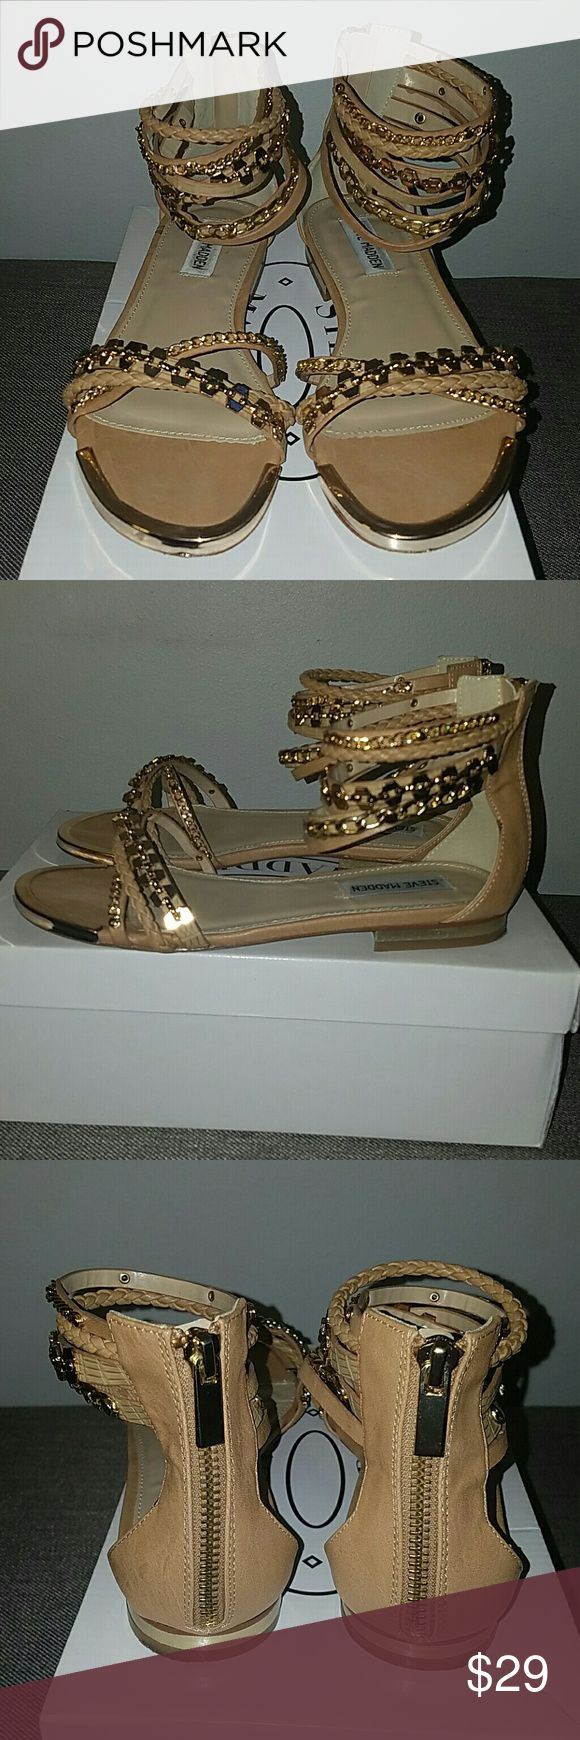 Steven Madden Sandals Nude with gold hardware, zip up, small heel, (WORN, VERY GOOD CONDITION) Steve Madden Shoes Sandals